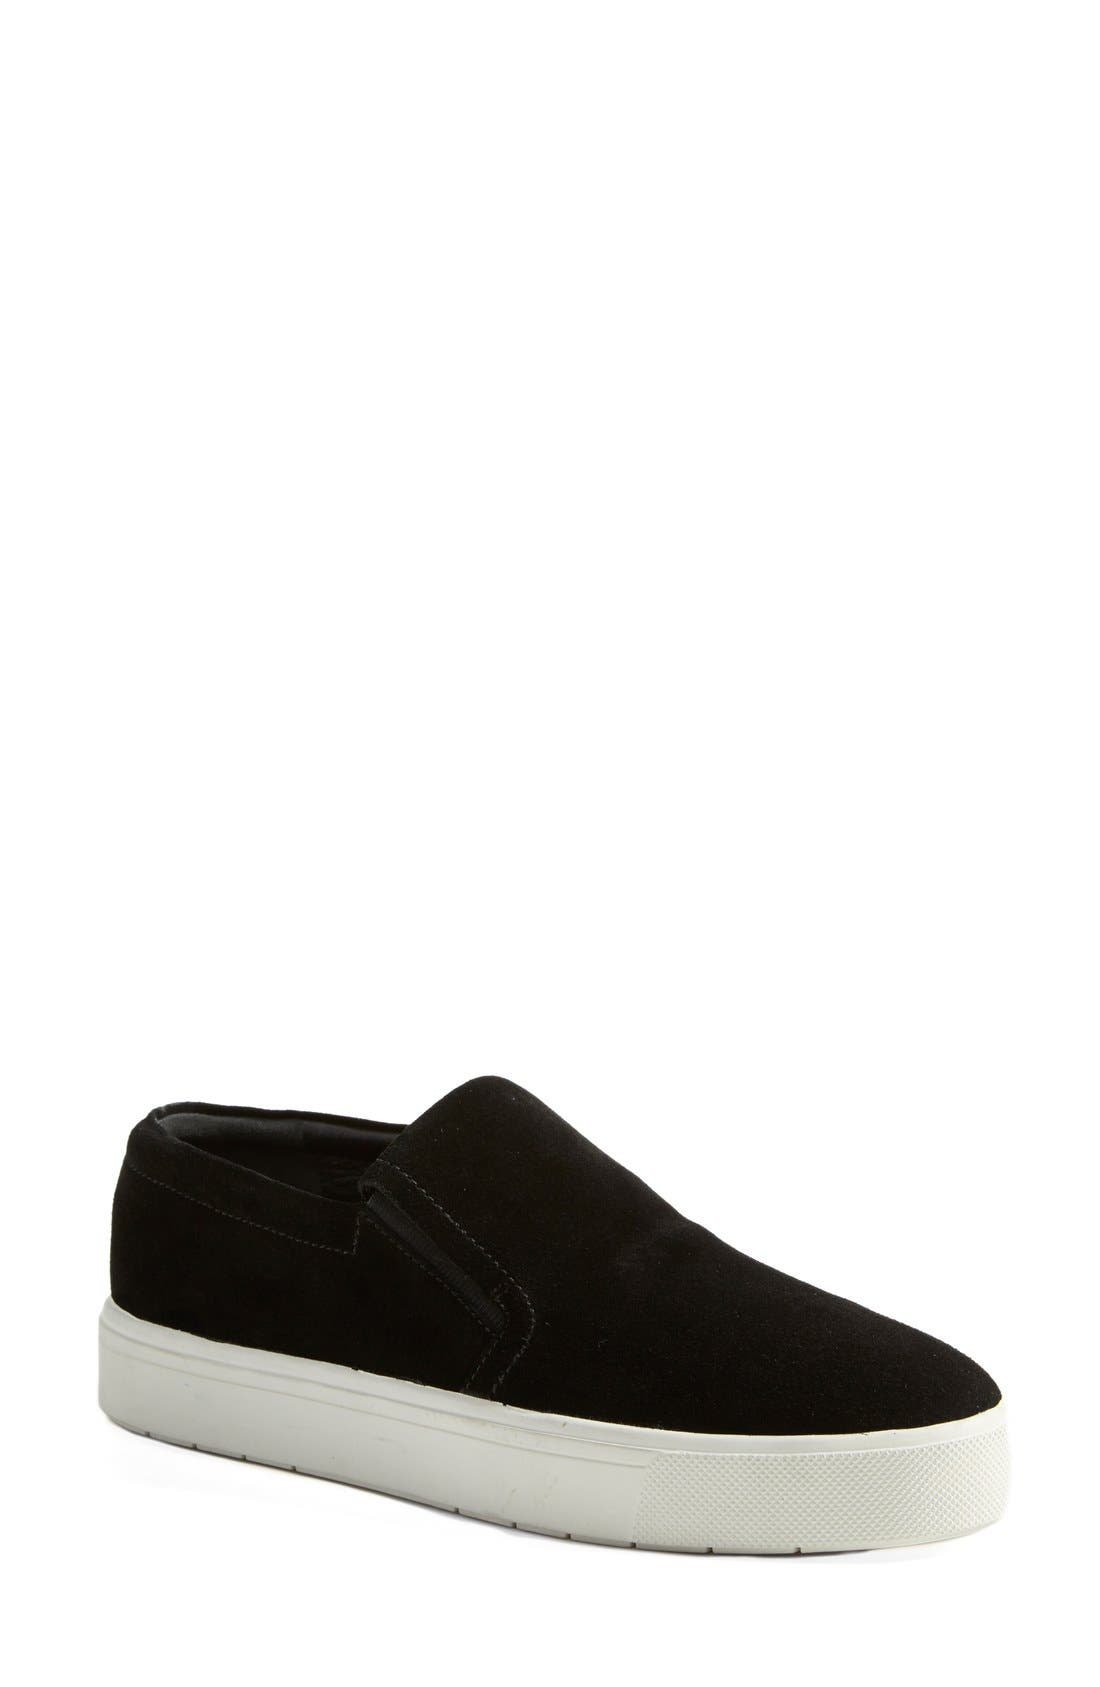 Main Image - Vince 'Bowen' Slip-On (Women)